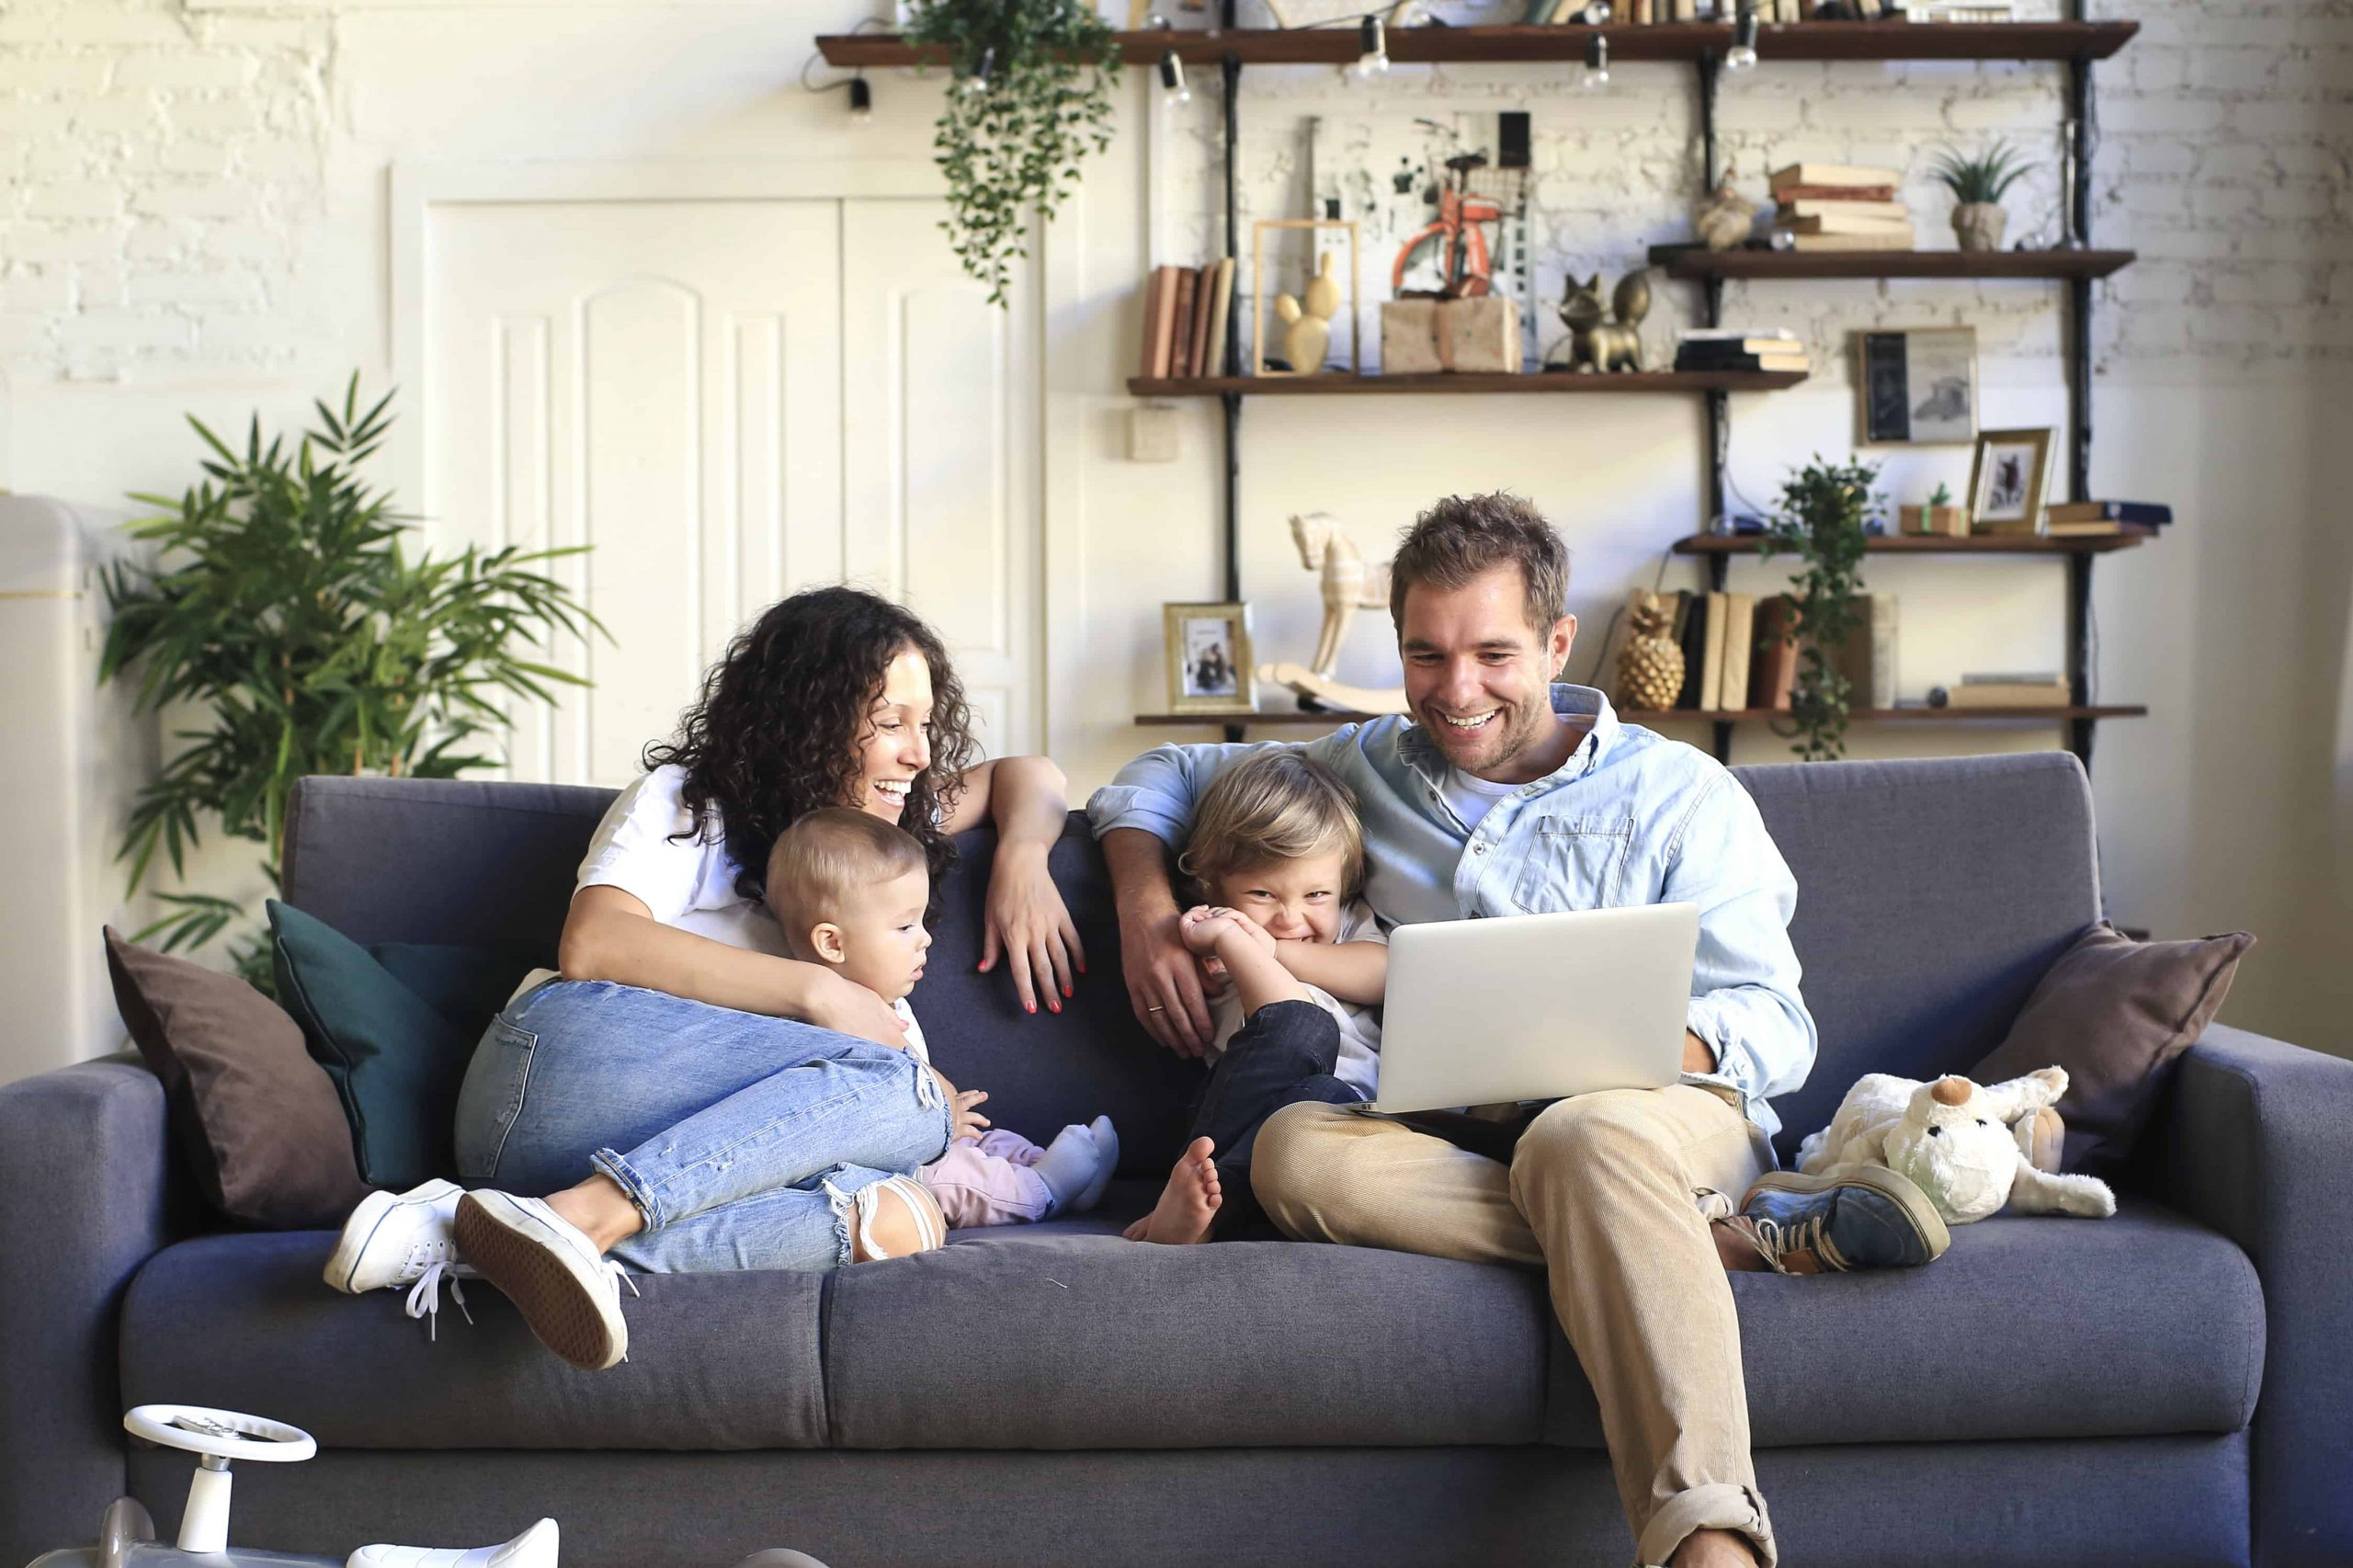 Happy Young adoptive Family enjoying each other on couch